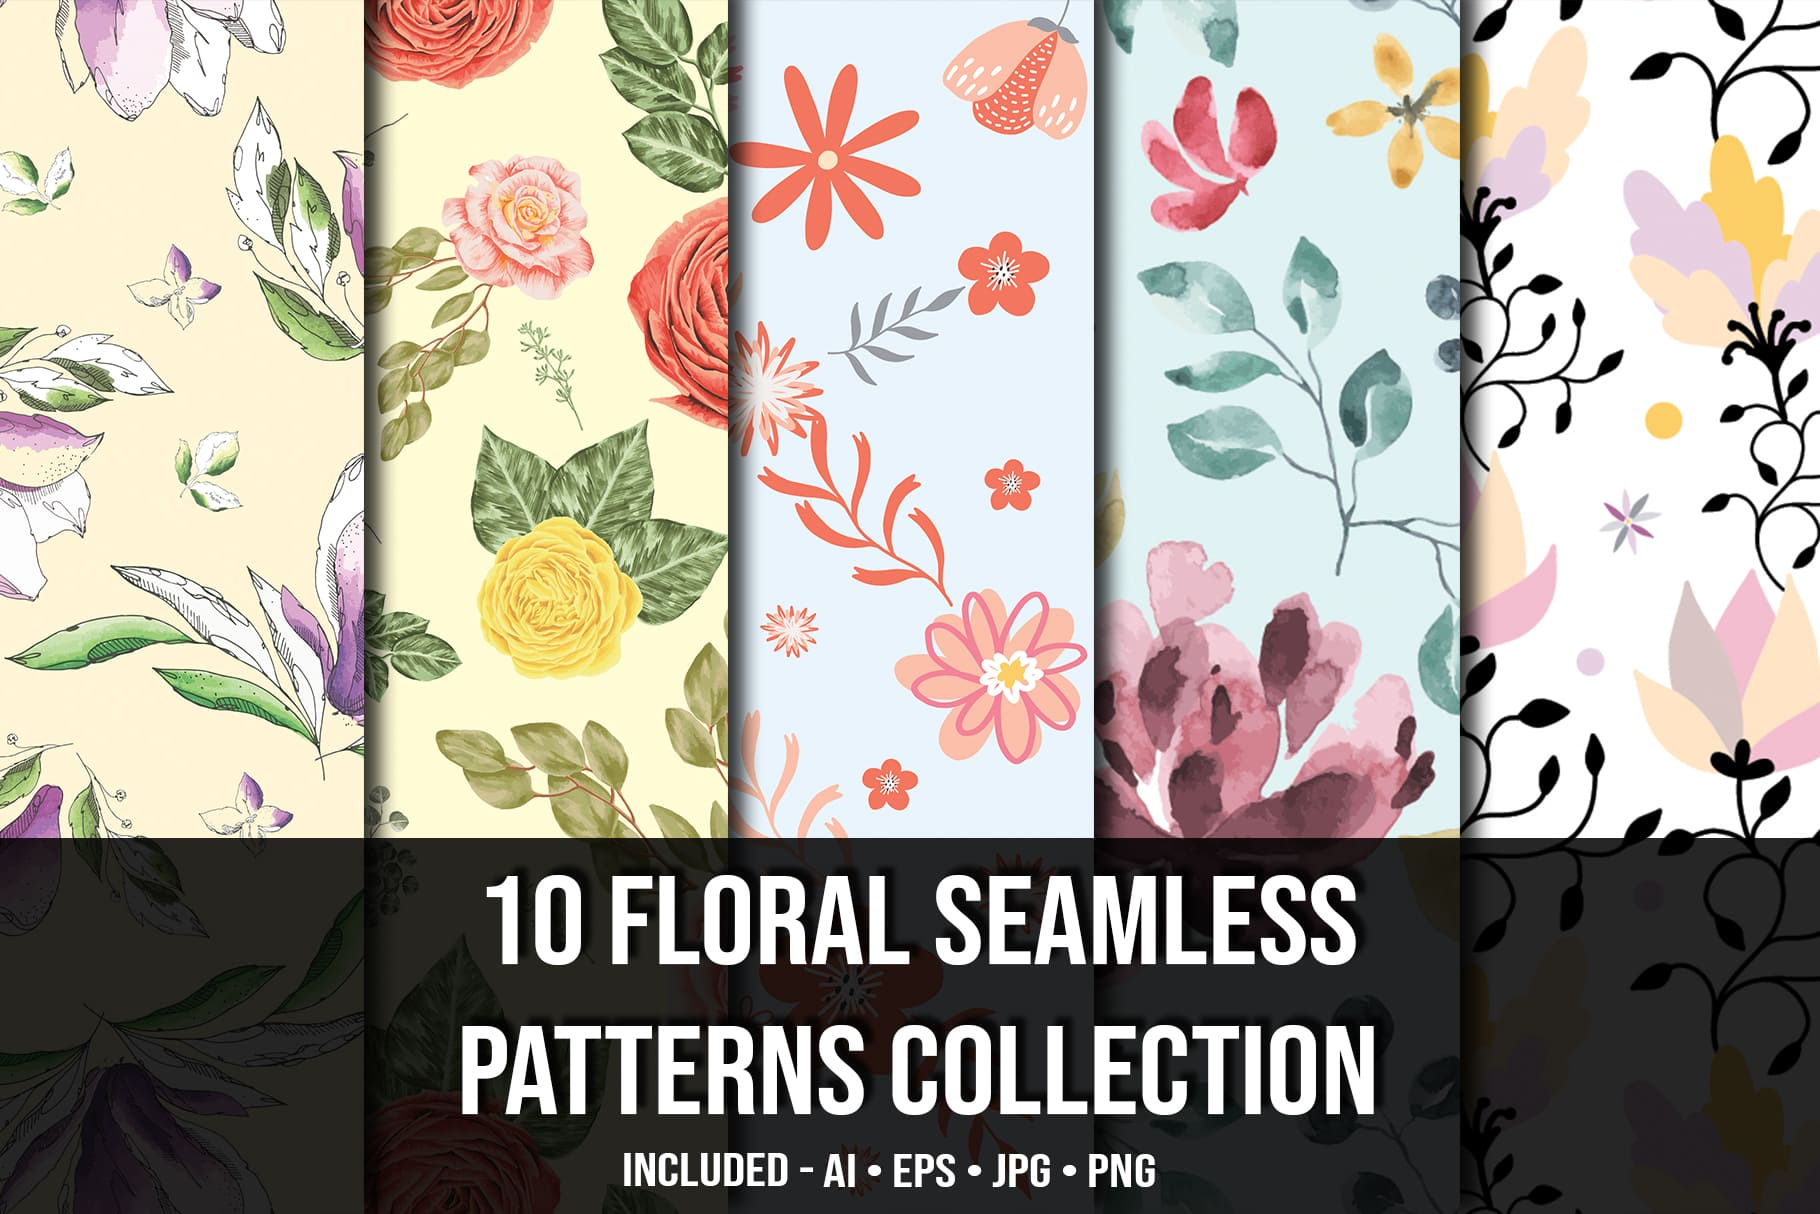 Main picture.Floral Seamless Patterns Collection.